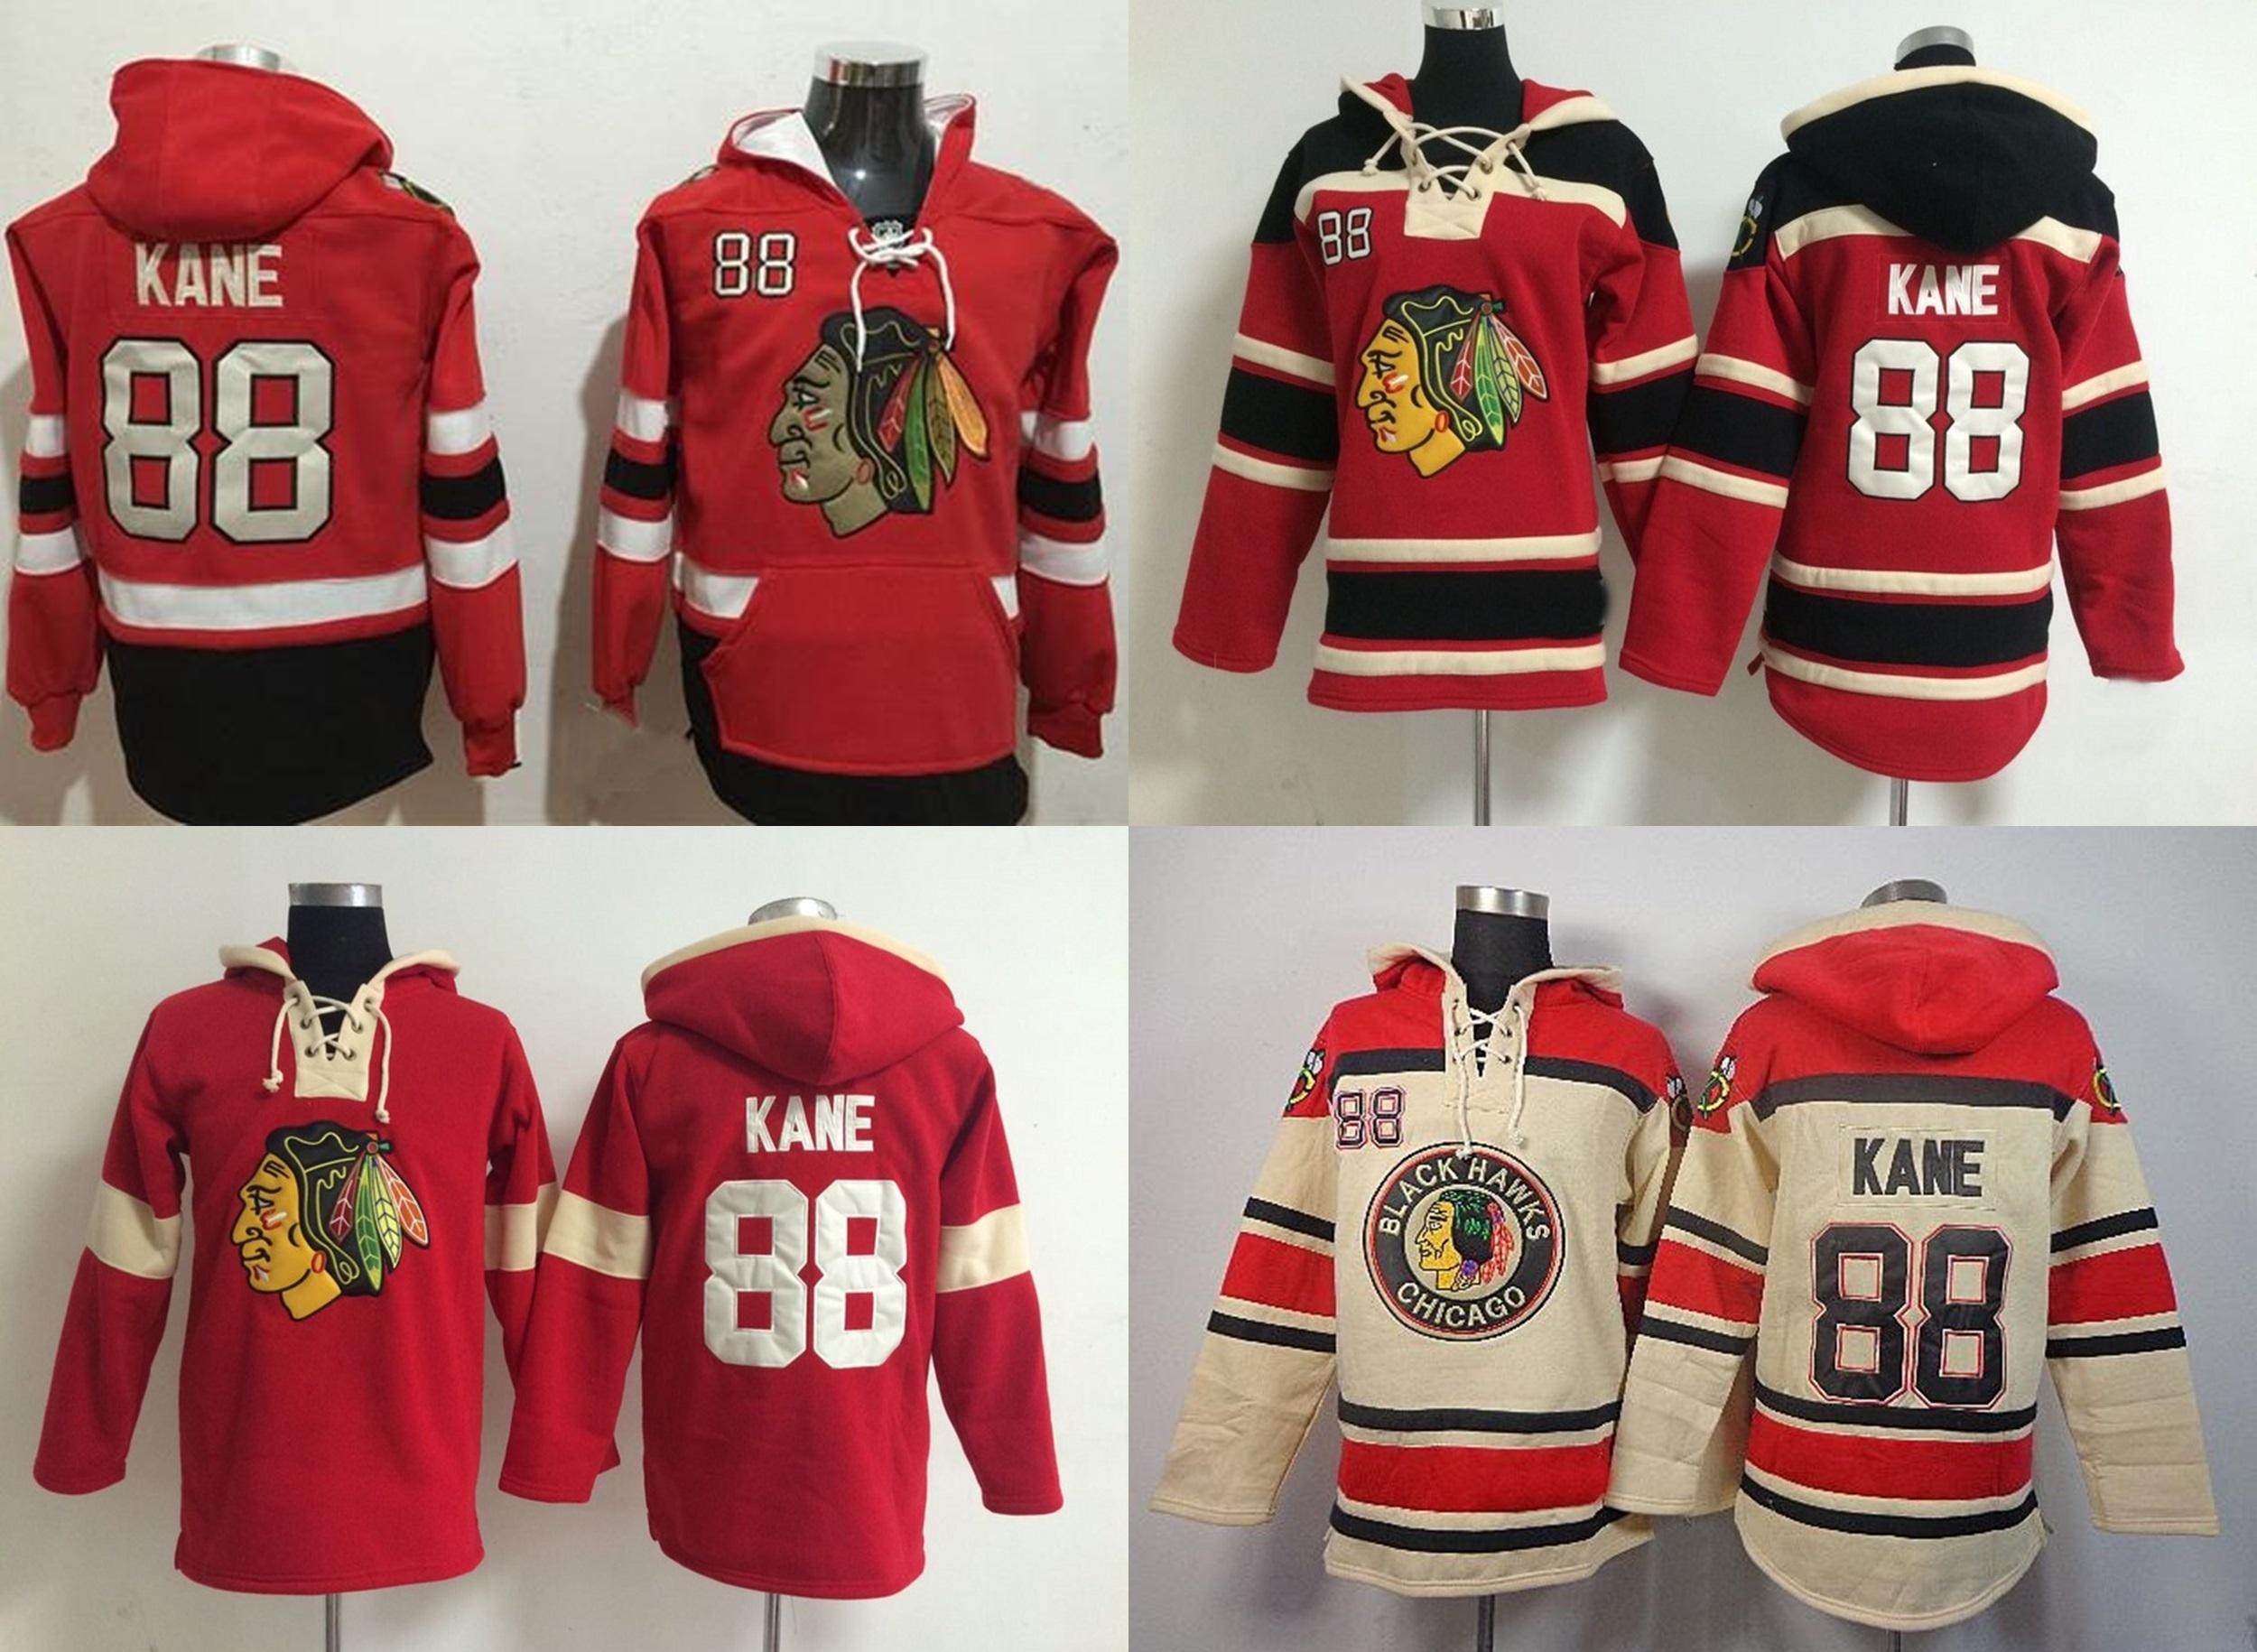 a88023fe2f4 2019 2015 Chicago Blackhawks Hoodies Mens  88 Patrick Kane Red Beige Ice  Hockey Hoddlies Sport Jerseys S 3XL